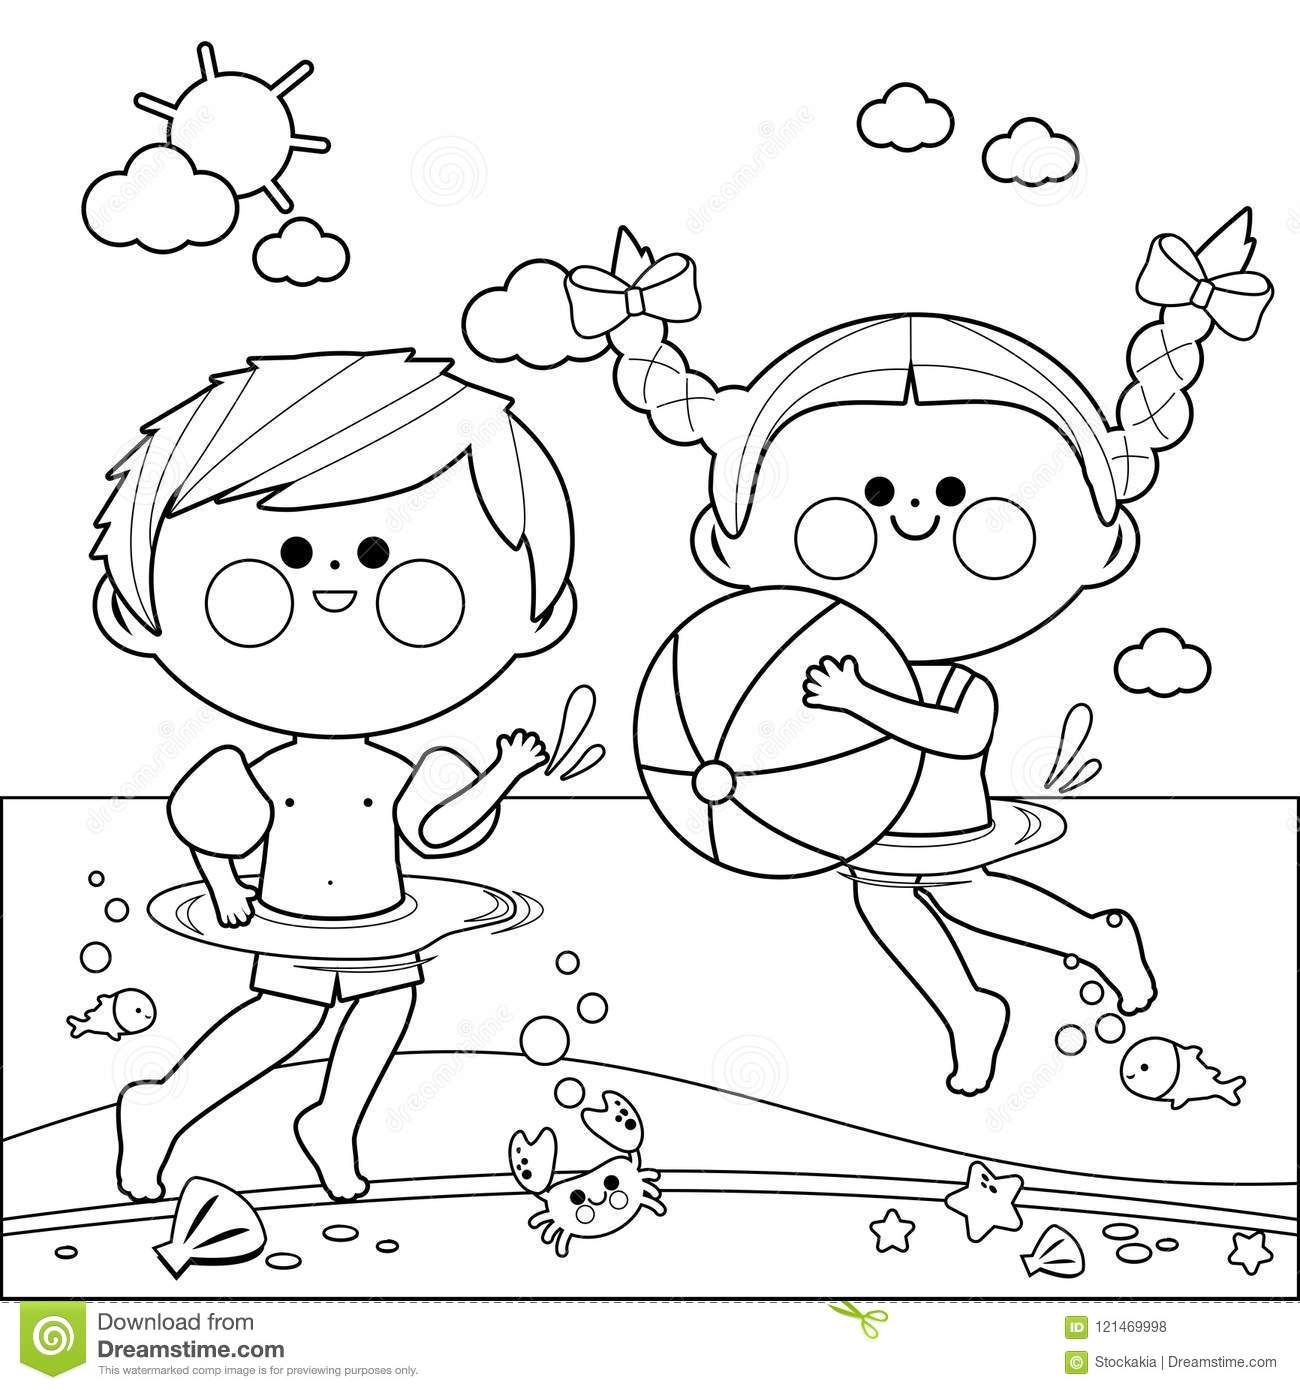 swimming kids coloring pages - photo#14